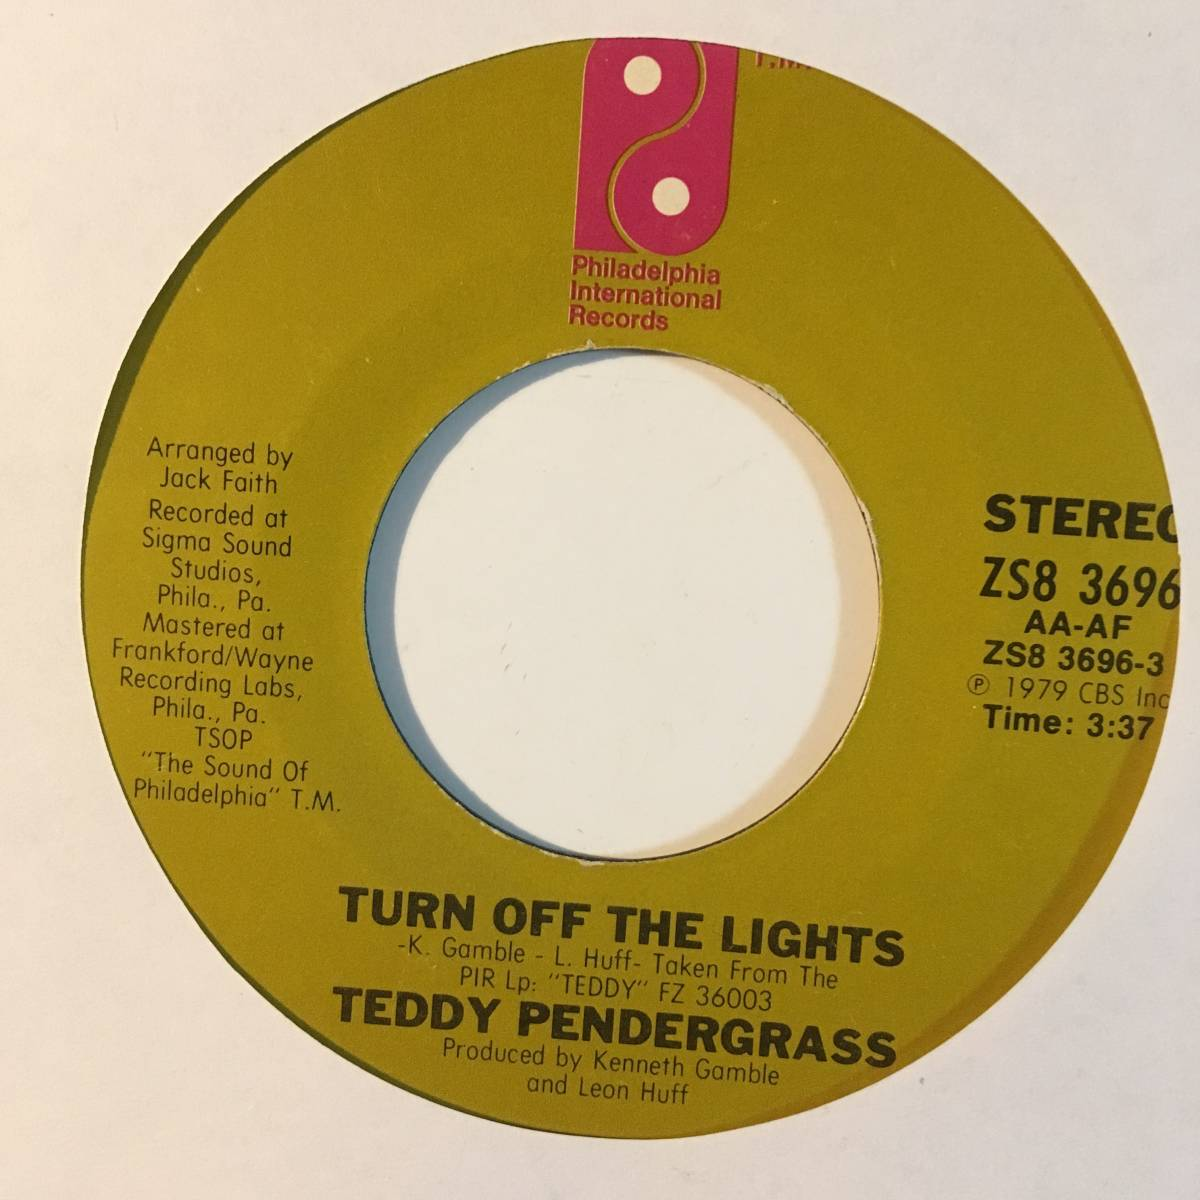 7'' Teddy Pendergrass Turn Off The Lights/If You Know Like I Know フリーソウル モダン ダンクラ free soul modern rare mellow groove_画像1